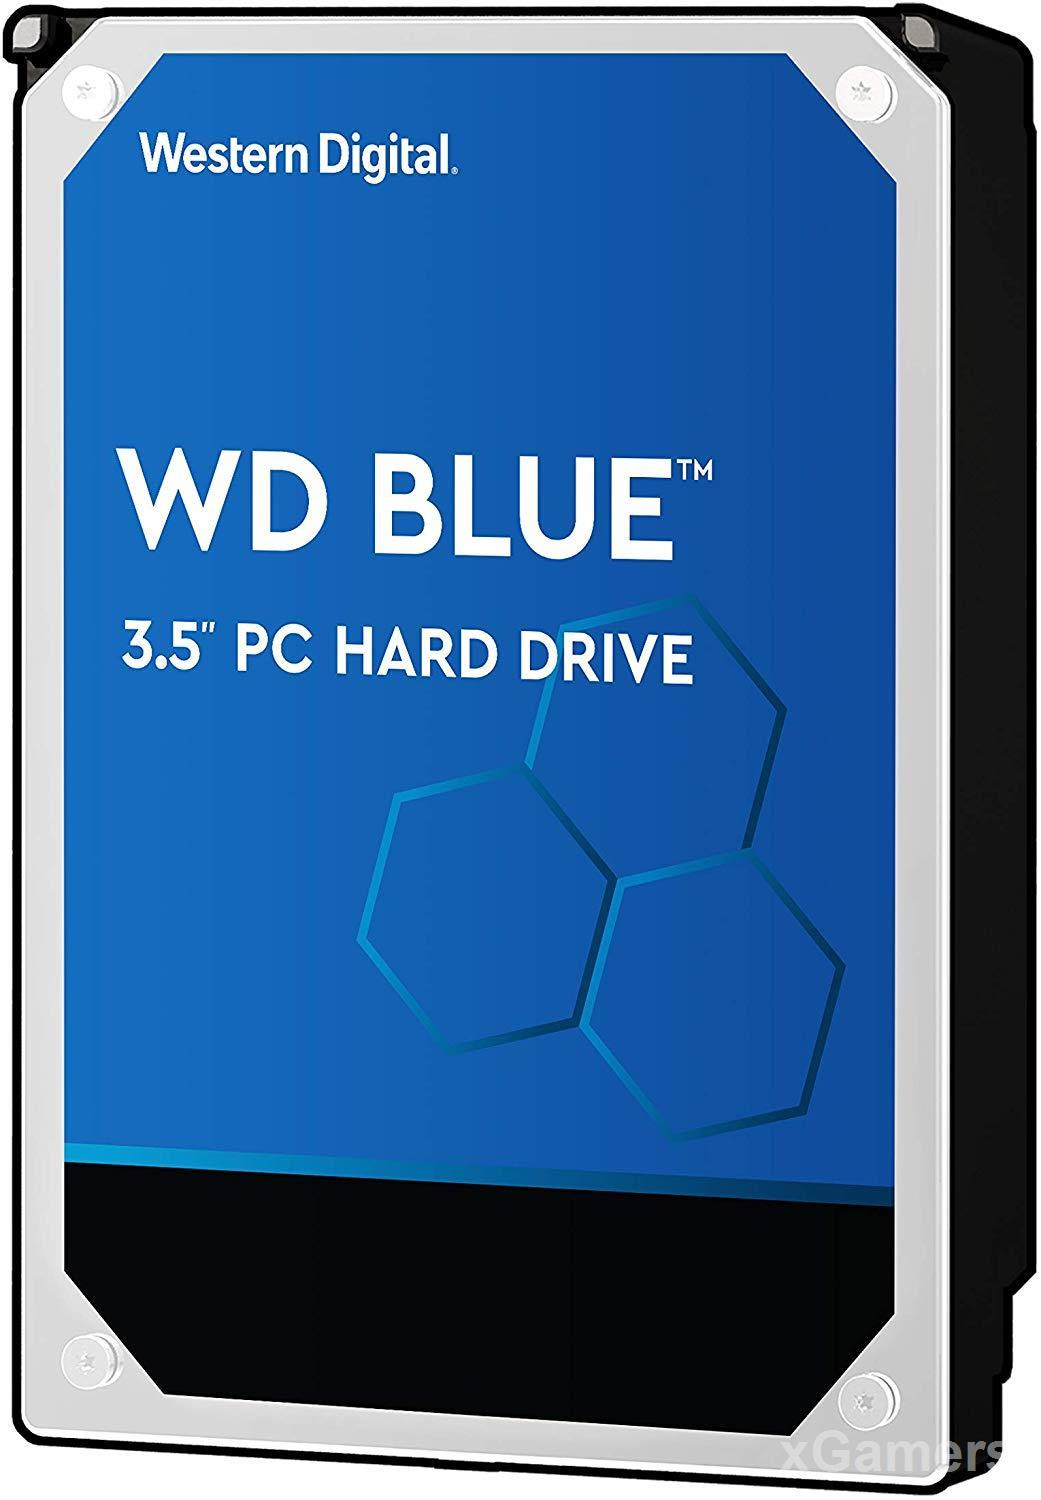 WD Blue 4TB PC Hard Drive